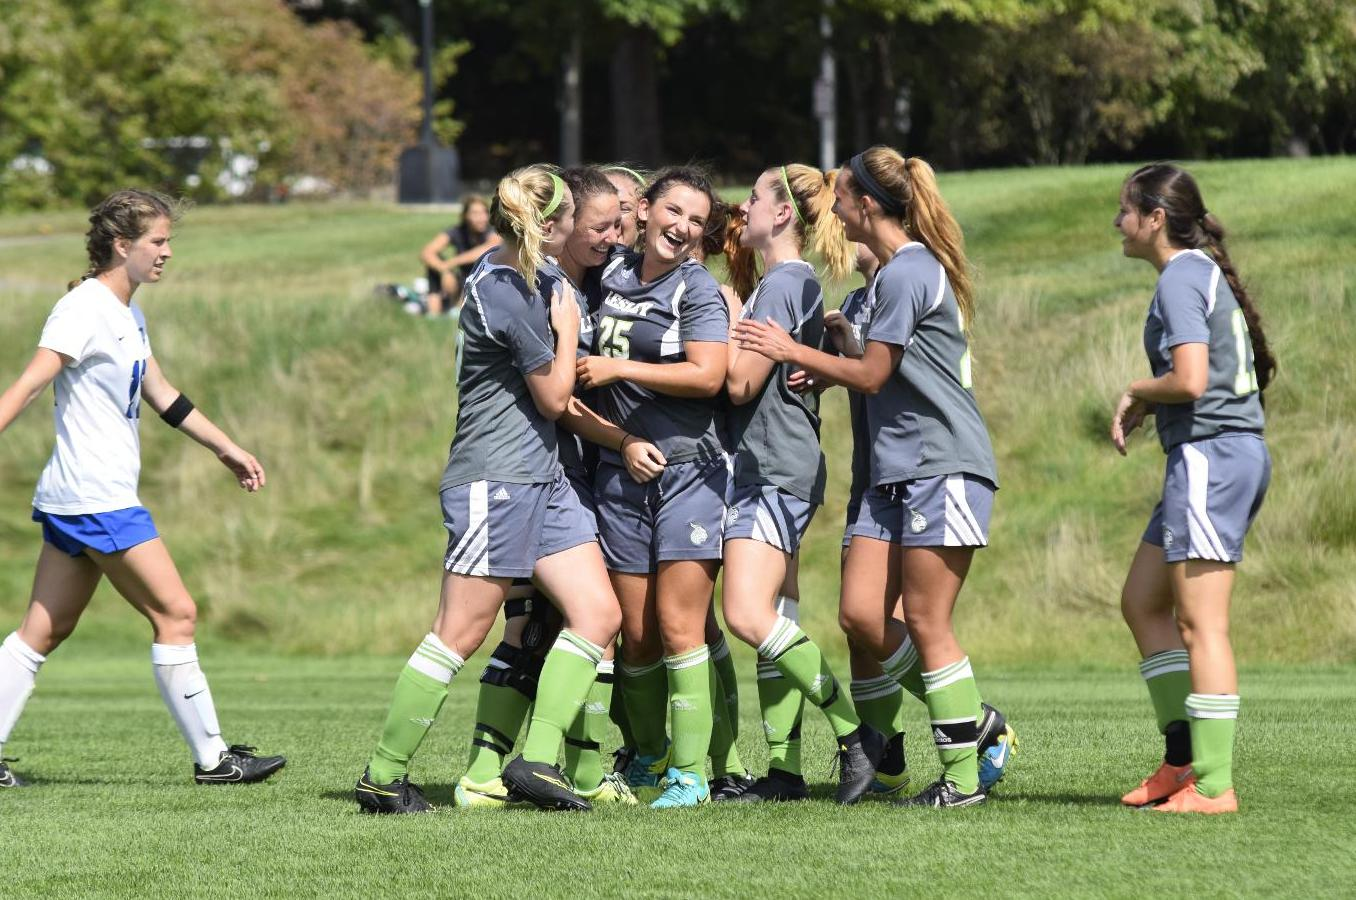 Rubin Continues to Lead Women's Soccer